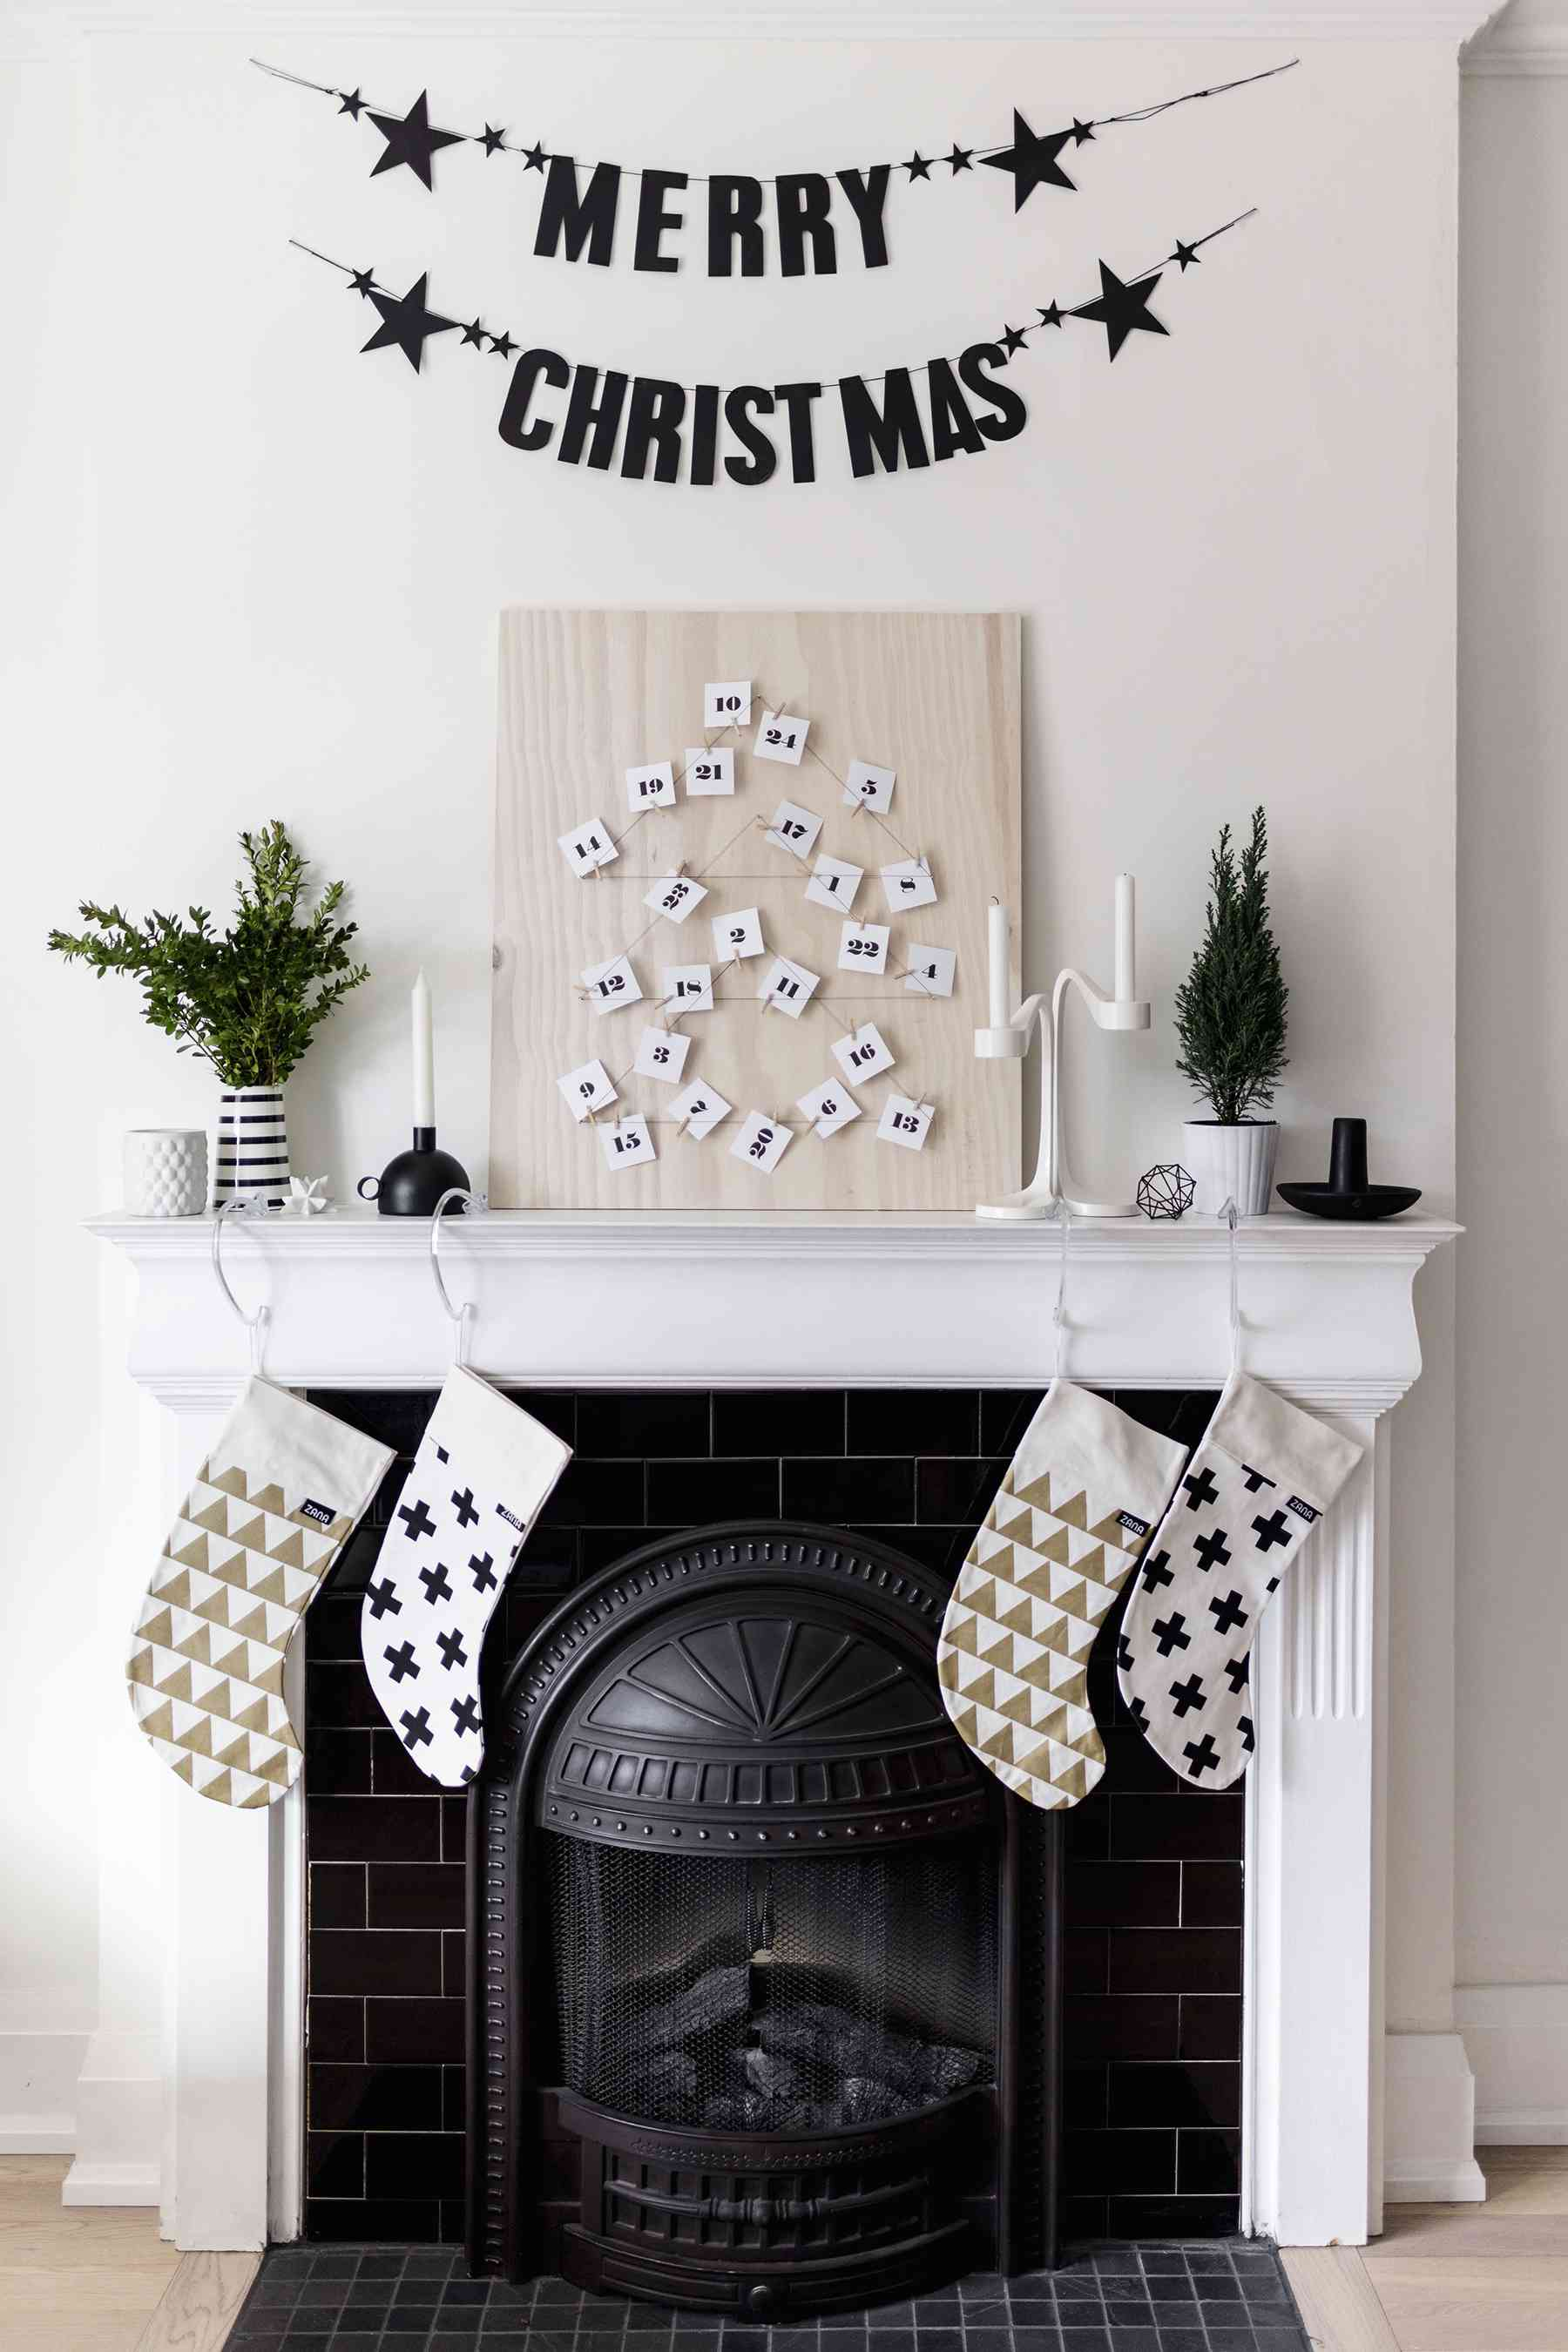 Modern black and white advent calendar on a board sitting on a mantle.